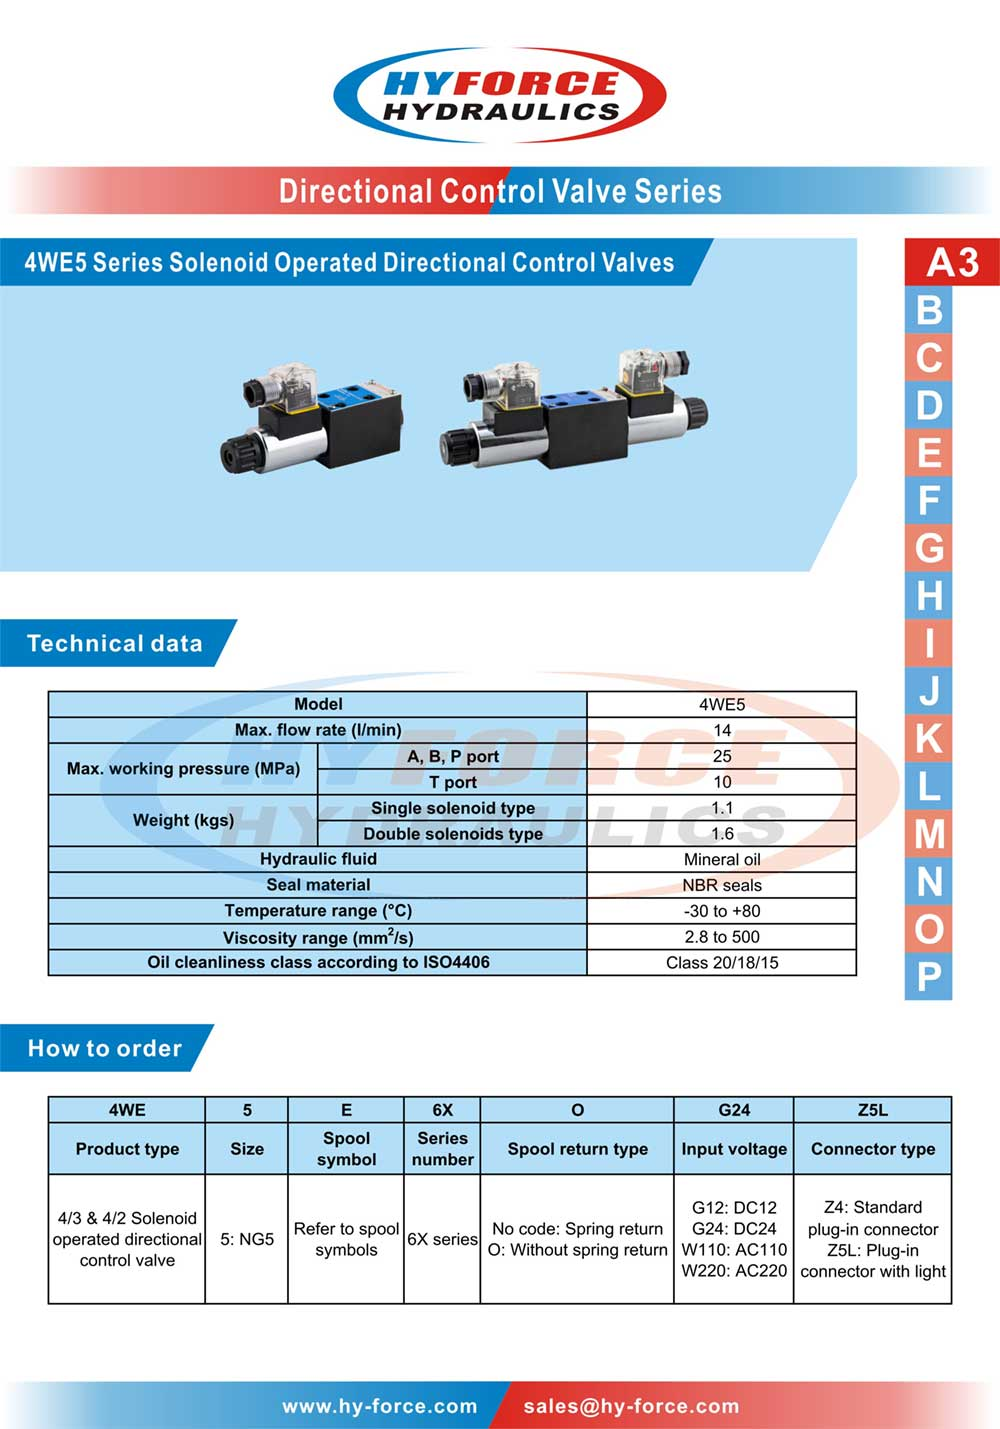 4we5 series solenoid operated directional control valves buy technical data how to order spool symbols dimensions previous 4we4 series solenoid operated directional control valves nvjuhfo Choice Image